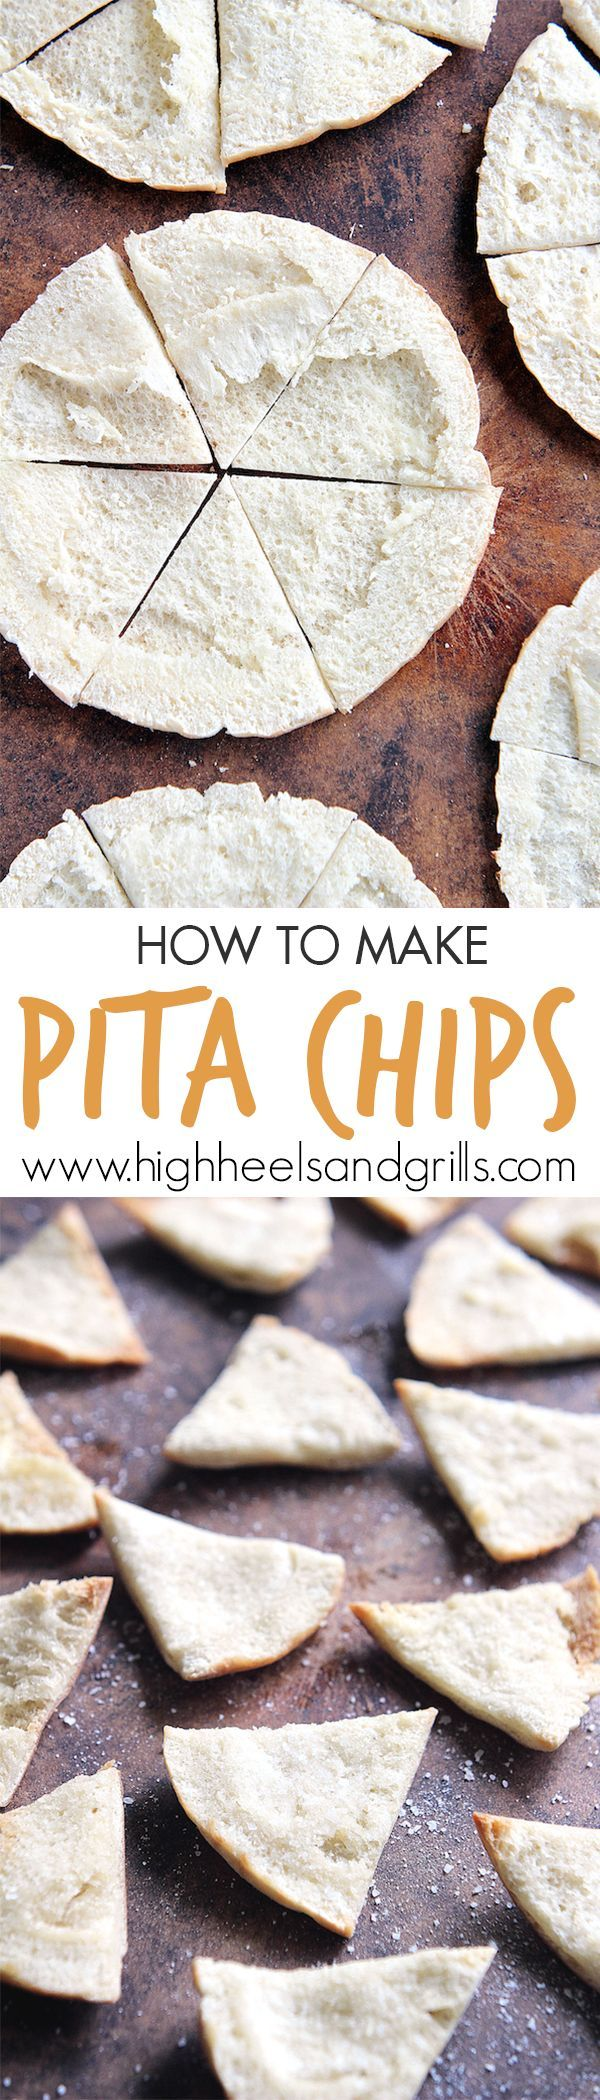 How to Make Pita Chips, the easy way. These are so good and taste way better than store bought pita chips.